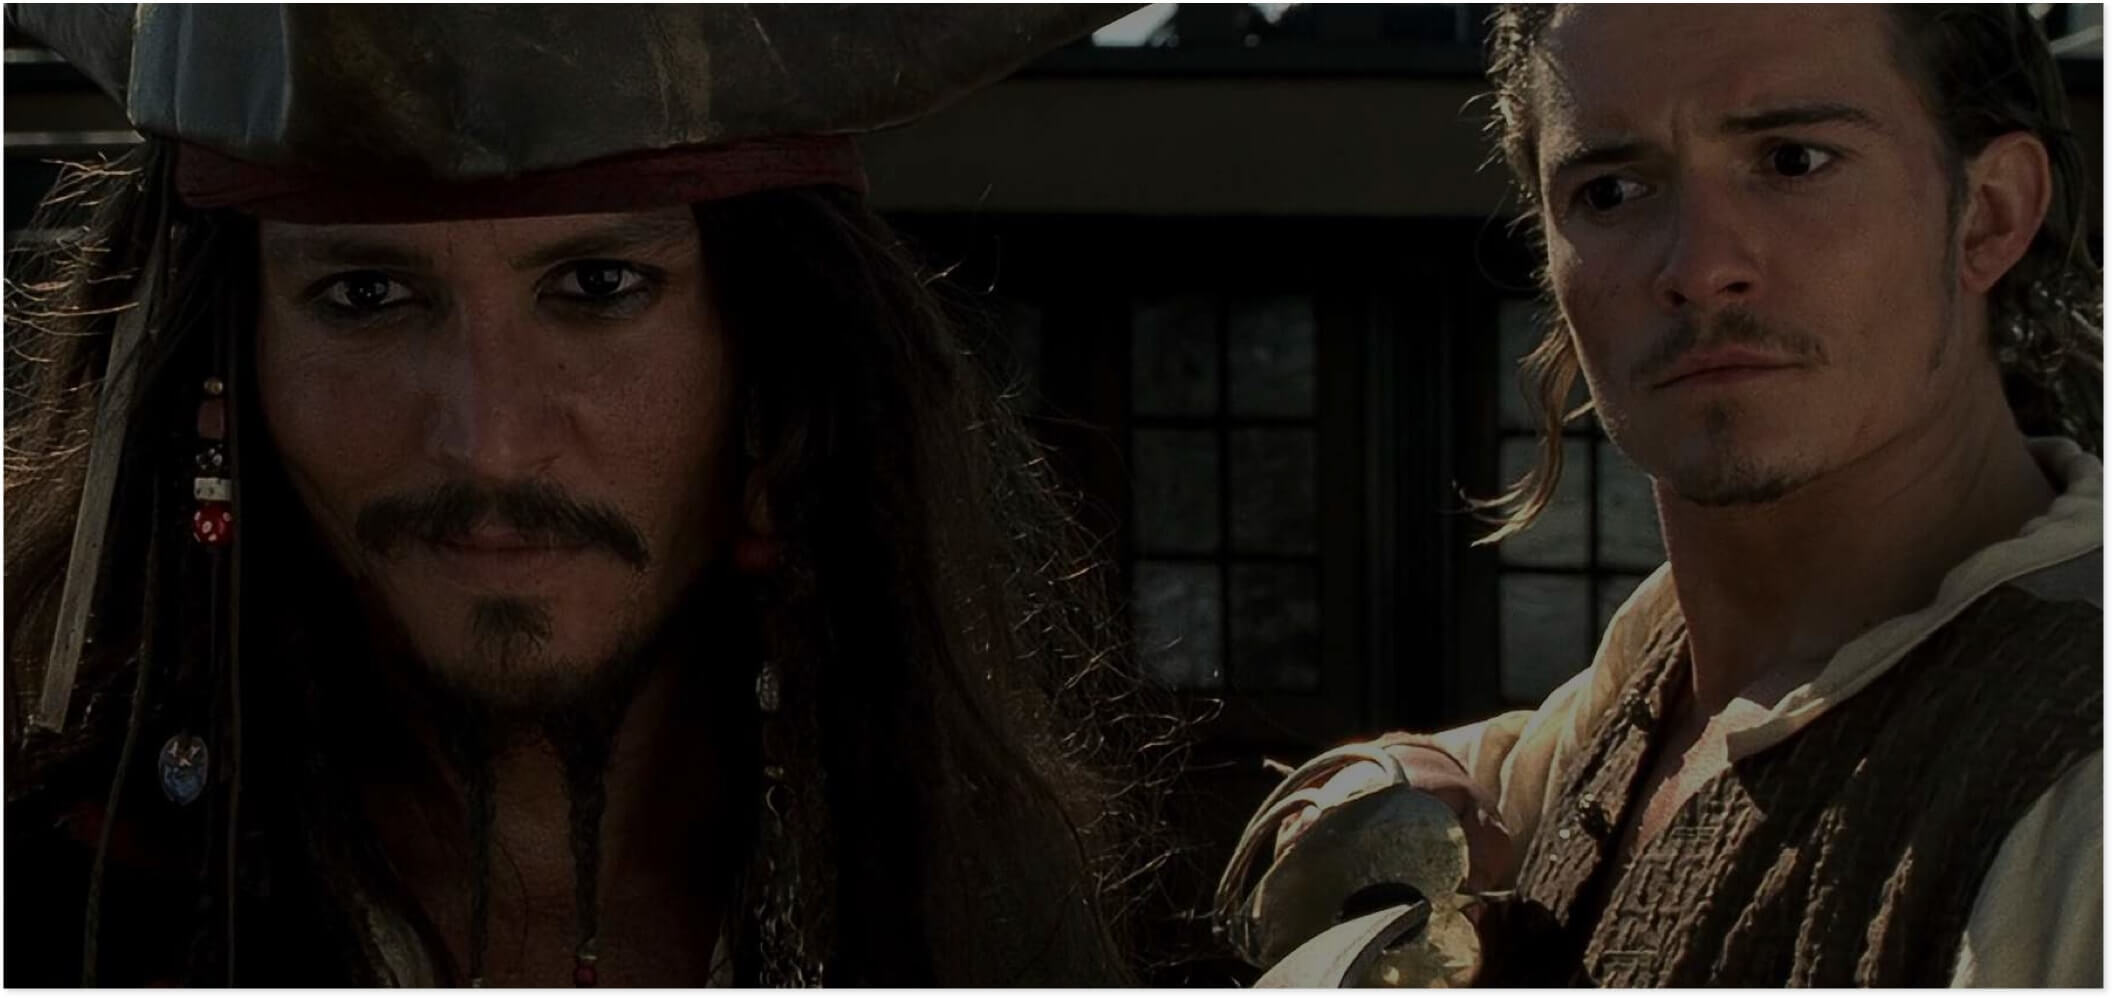 How to Write a Compelling Logline (with a Logline Examples) - Pirates of the Caribbean - The Curse of the Black Pearl Logline